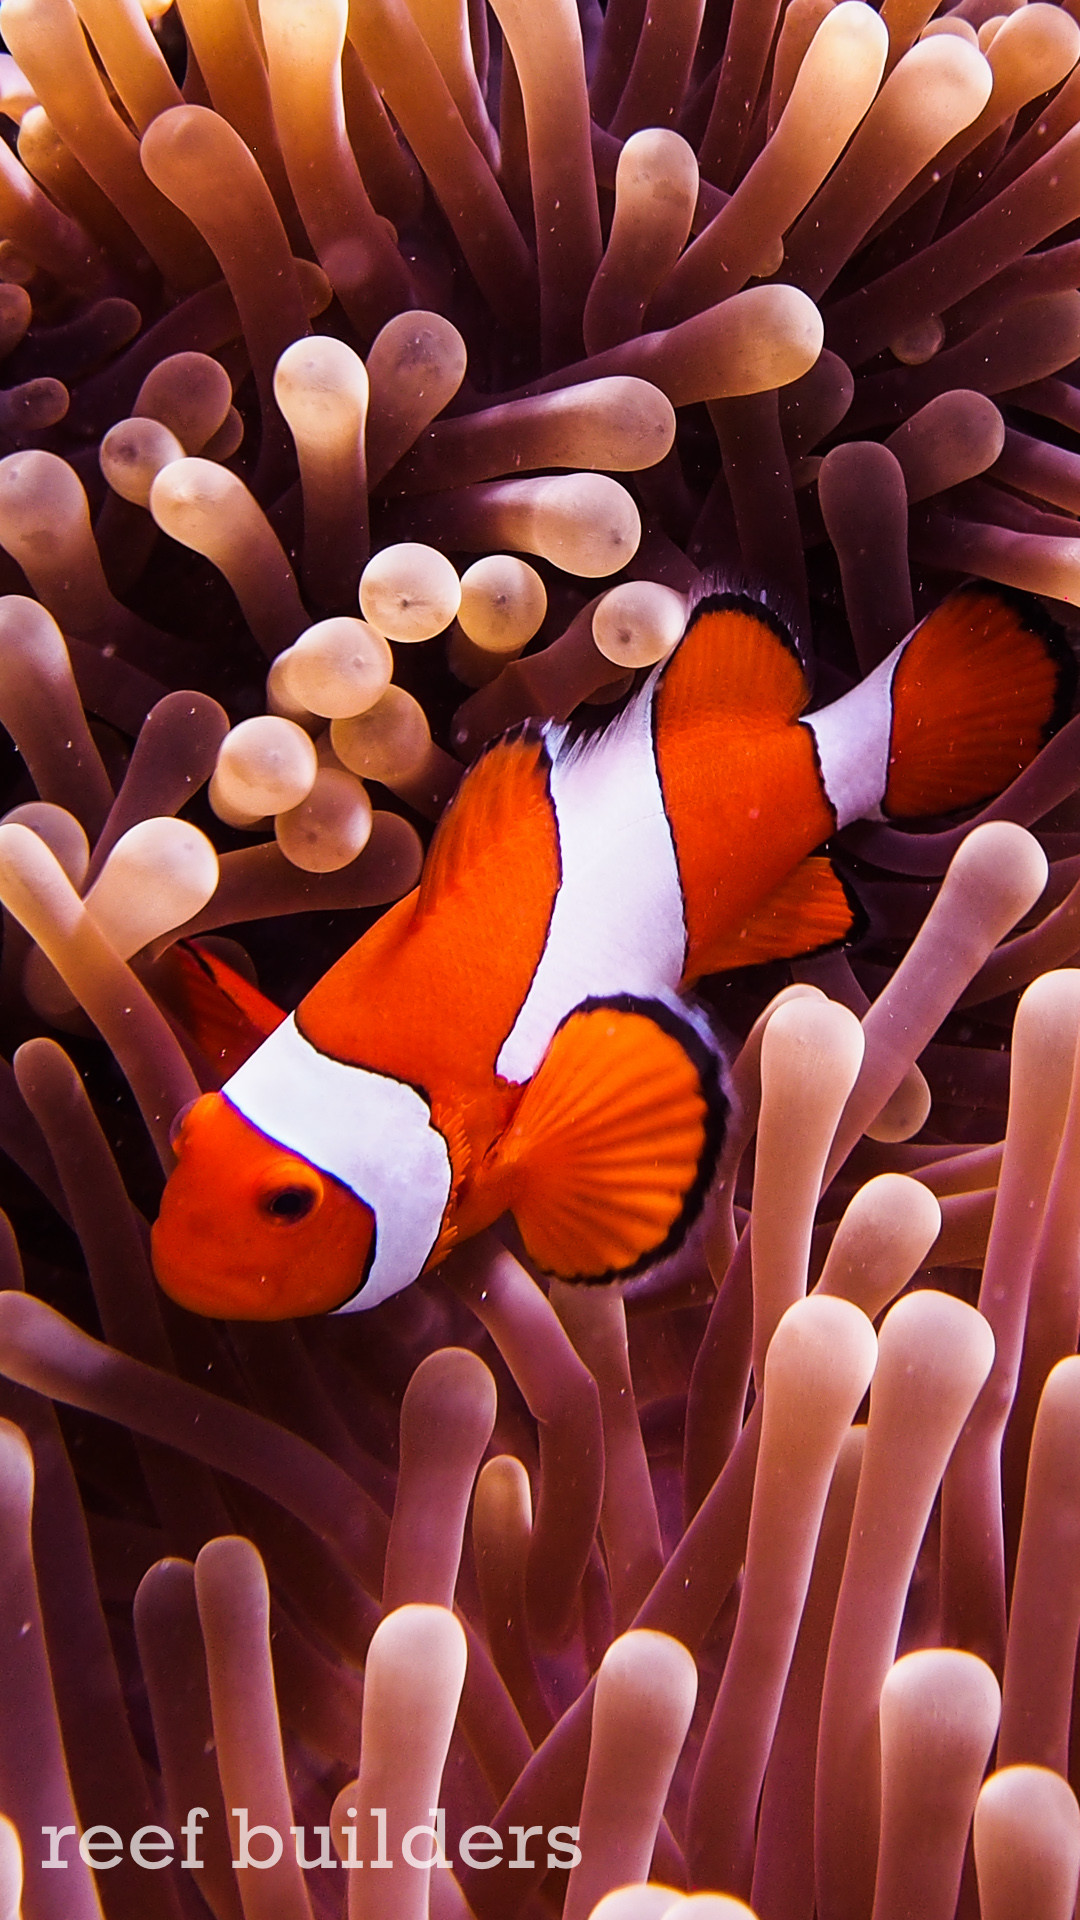 … iphone6-plus-coral-reef-fish-wallpaper-background-6 …